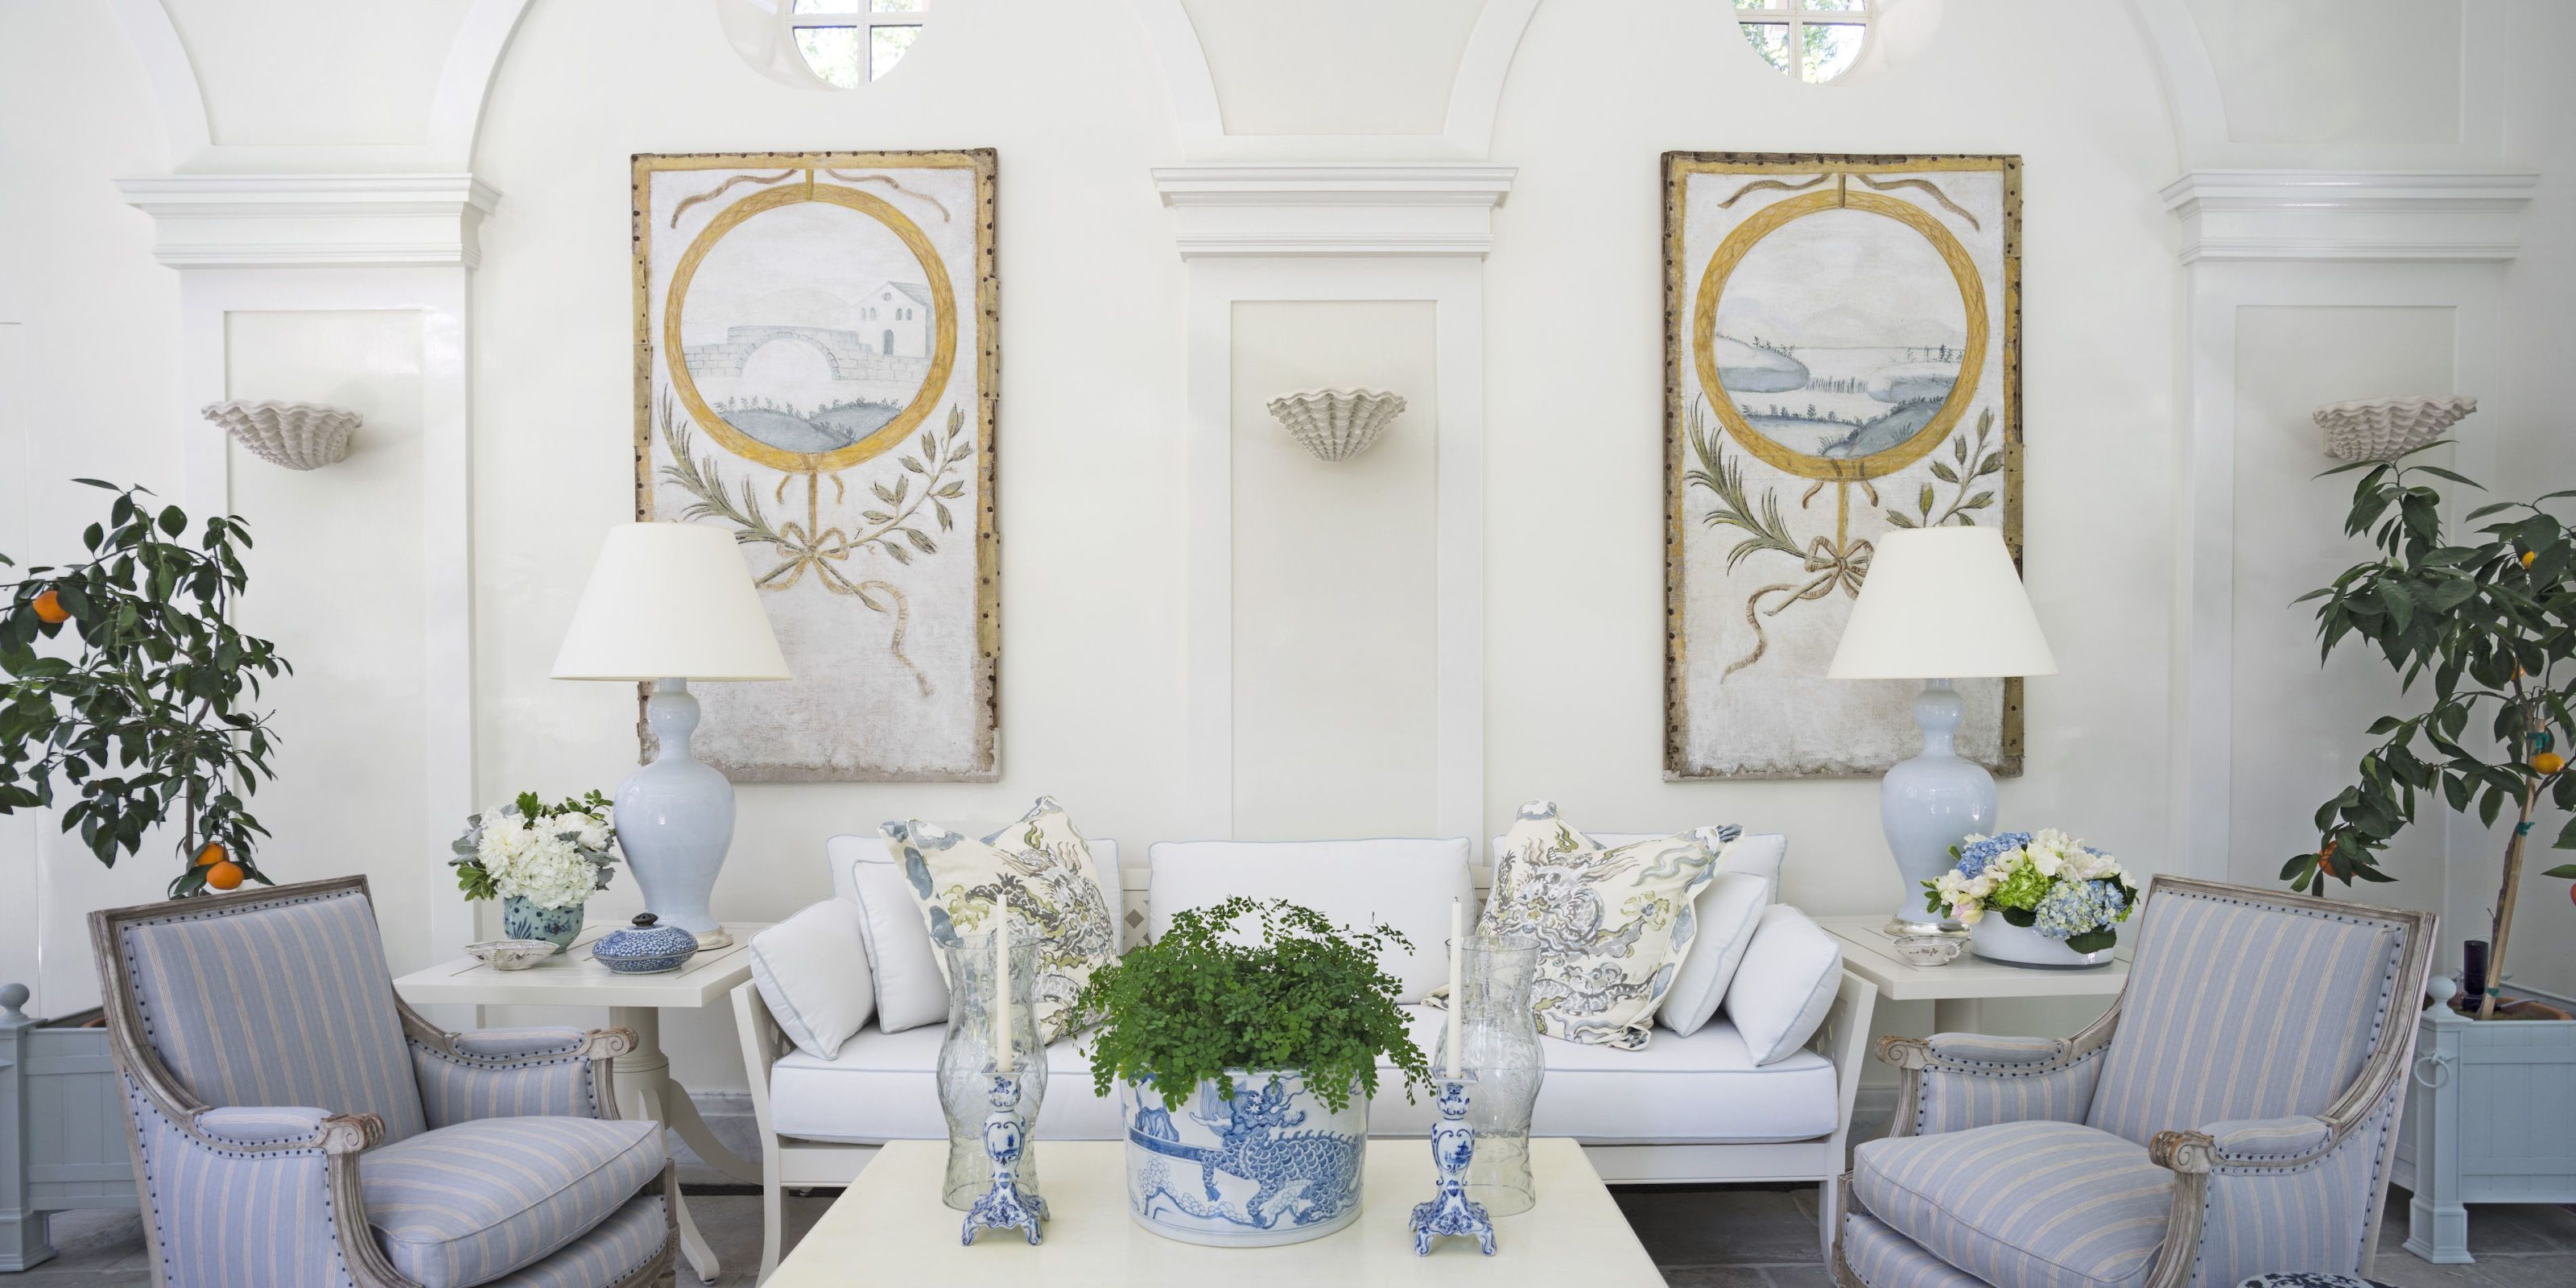 Take Inspiration From Snowy Winter Landscapes By Going For Simply Elegant  All White Decor.